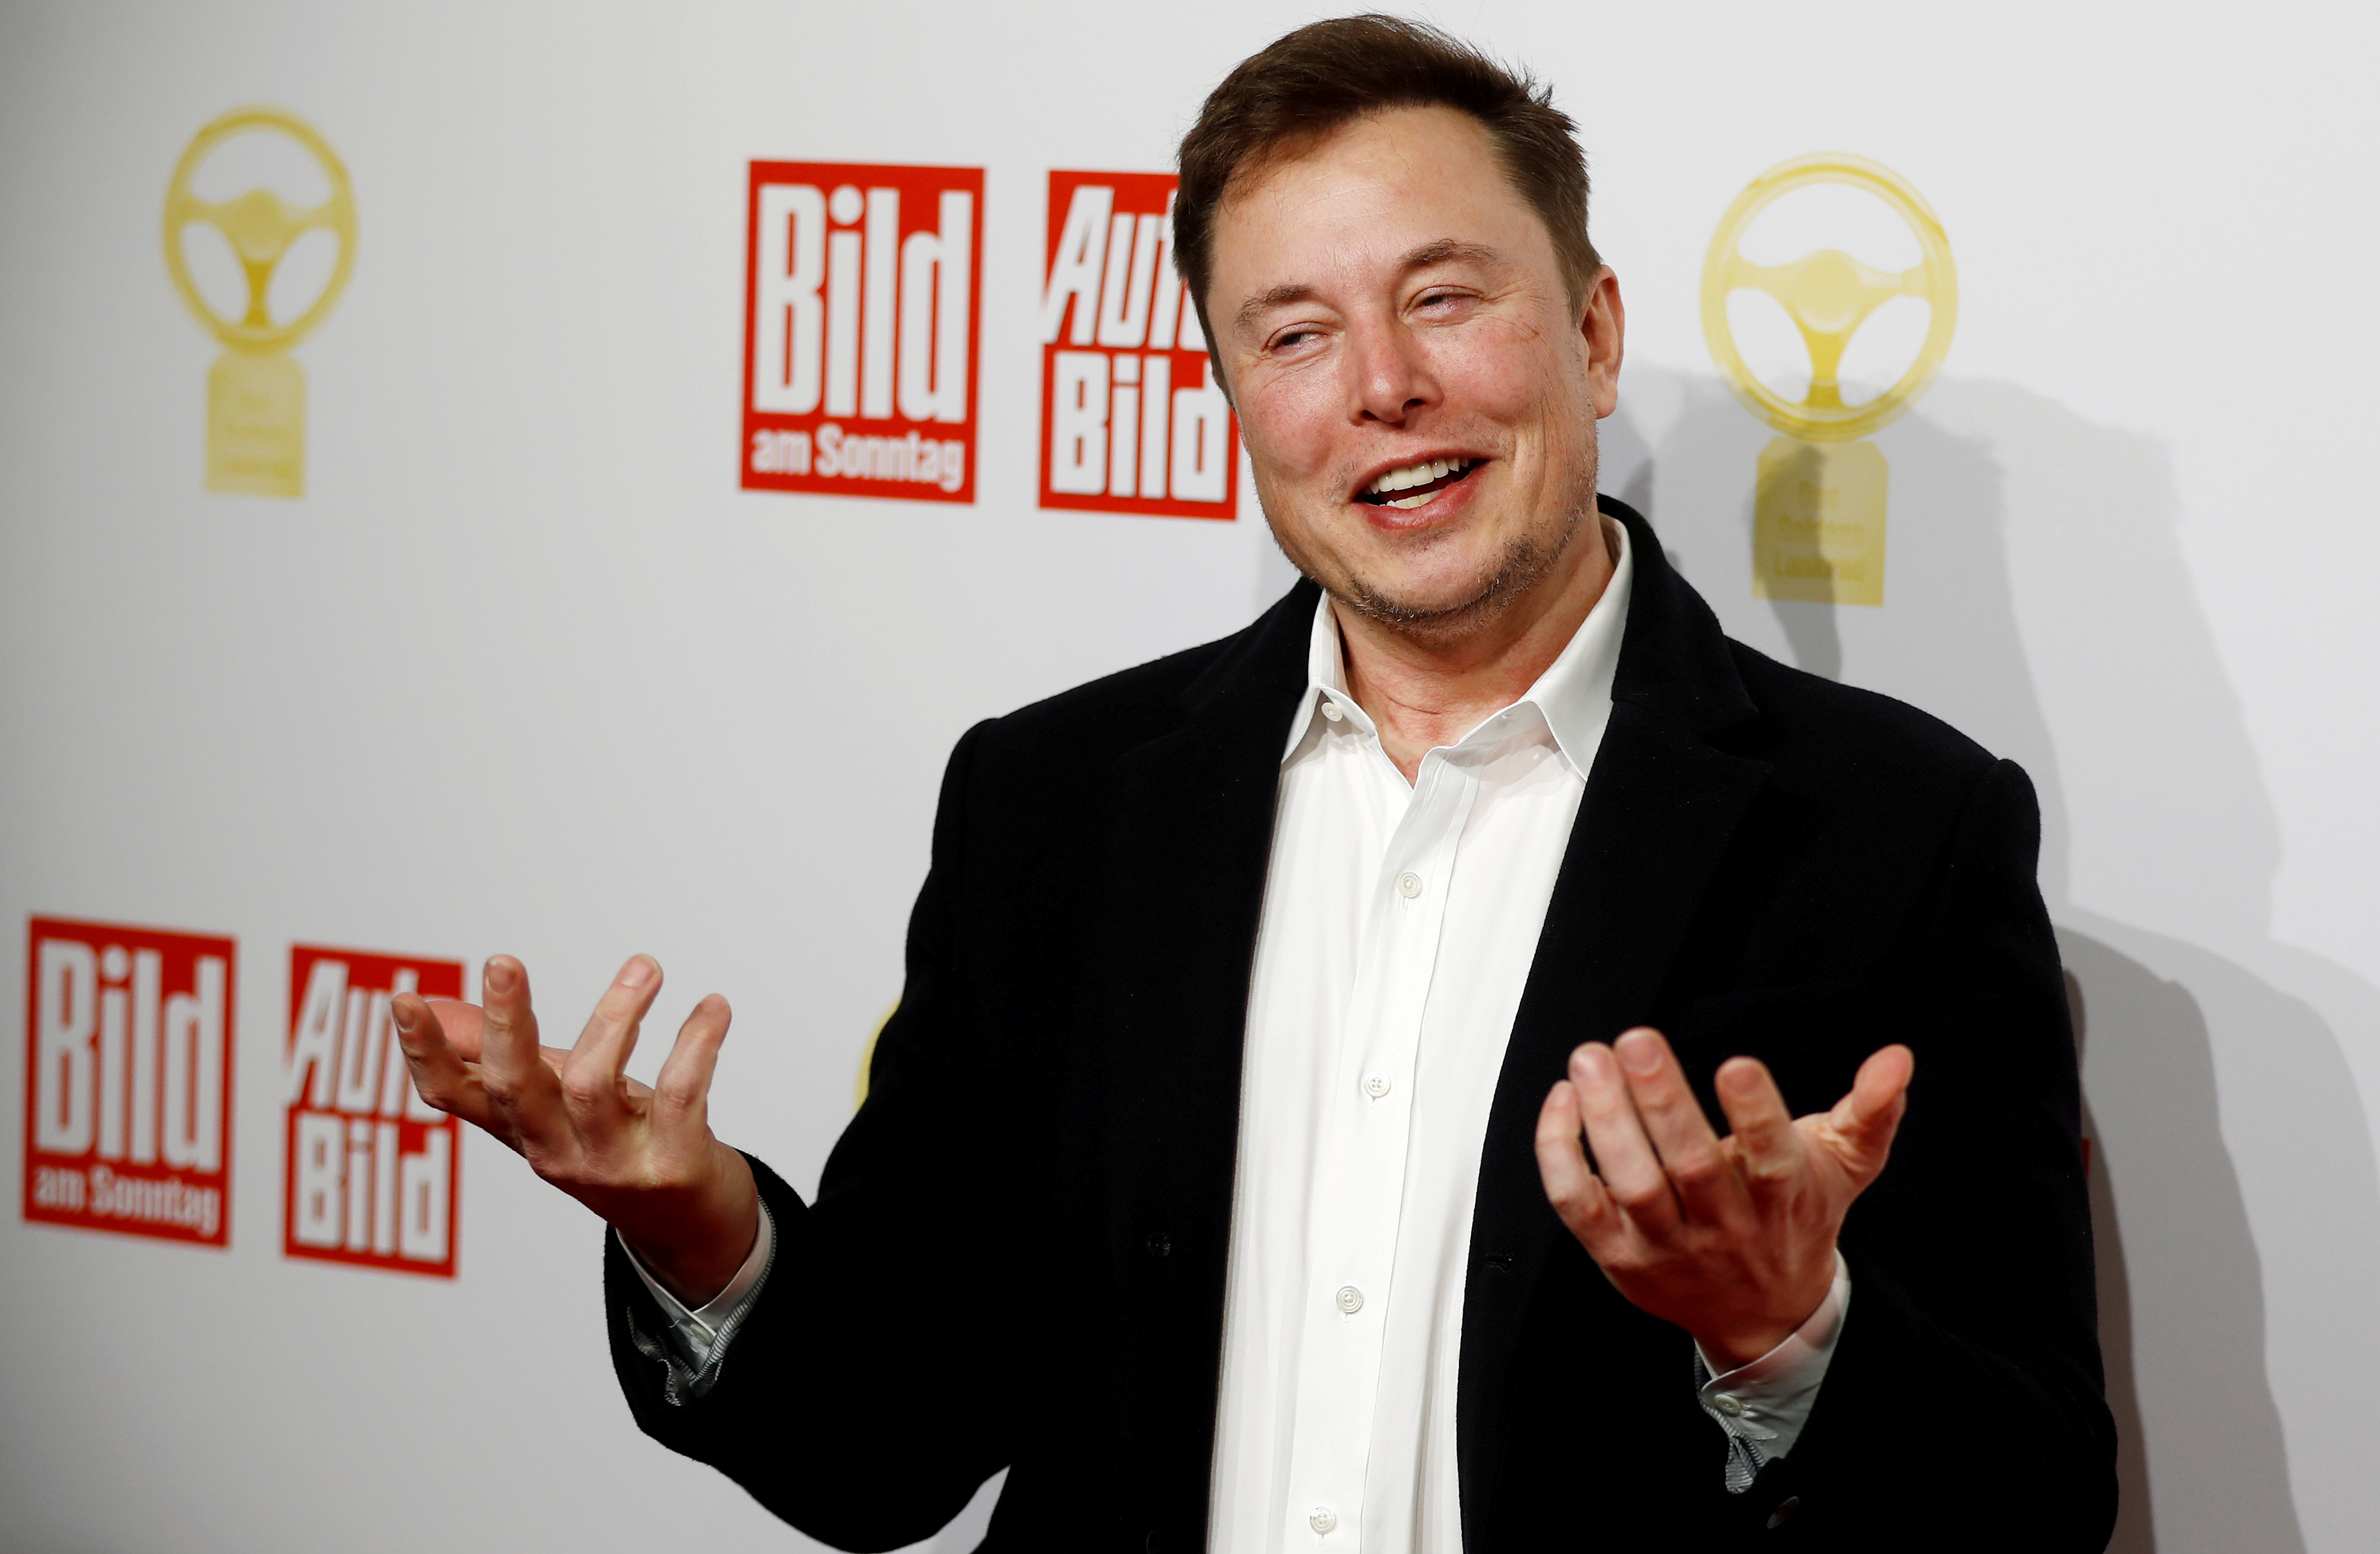 SpaceX owner and Tesla CEO Elon Musk arrives on the red carpet for the automobile awards